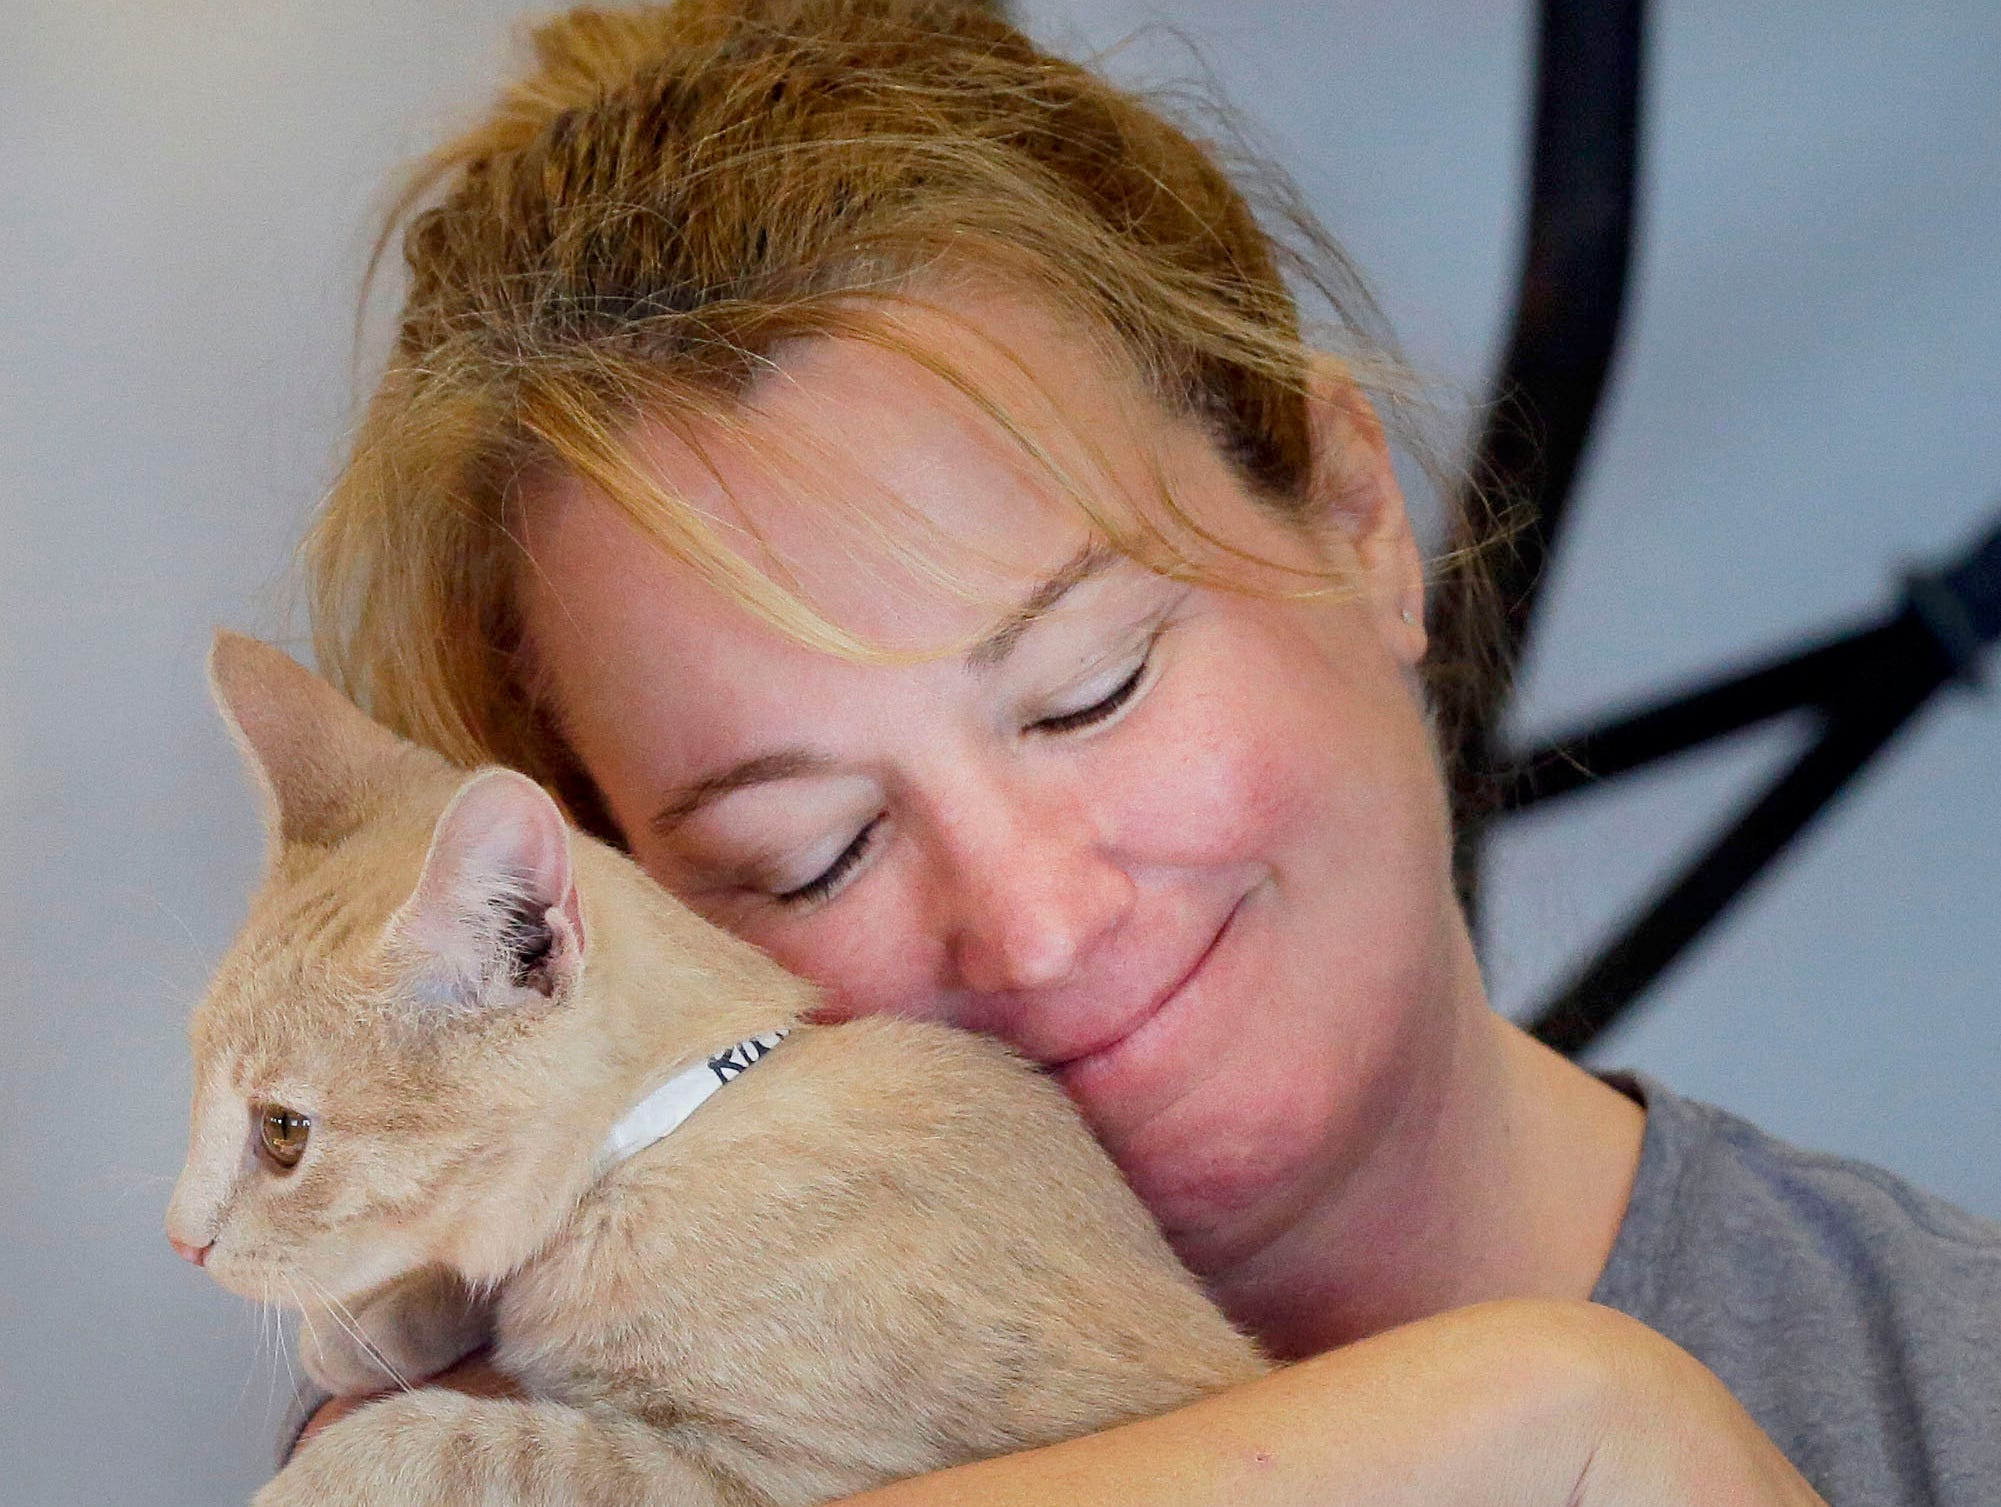 Wendy Sontag hugs a kitten as the Fox Valley Humane Association and Grace Under Fire Yoga bring together adoptable kittens and yoga class for Kitten Yoga on Saturday, Oct. 13, 2018, at the Fox Valley Humane Association in Appleton, Wis.